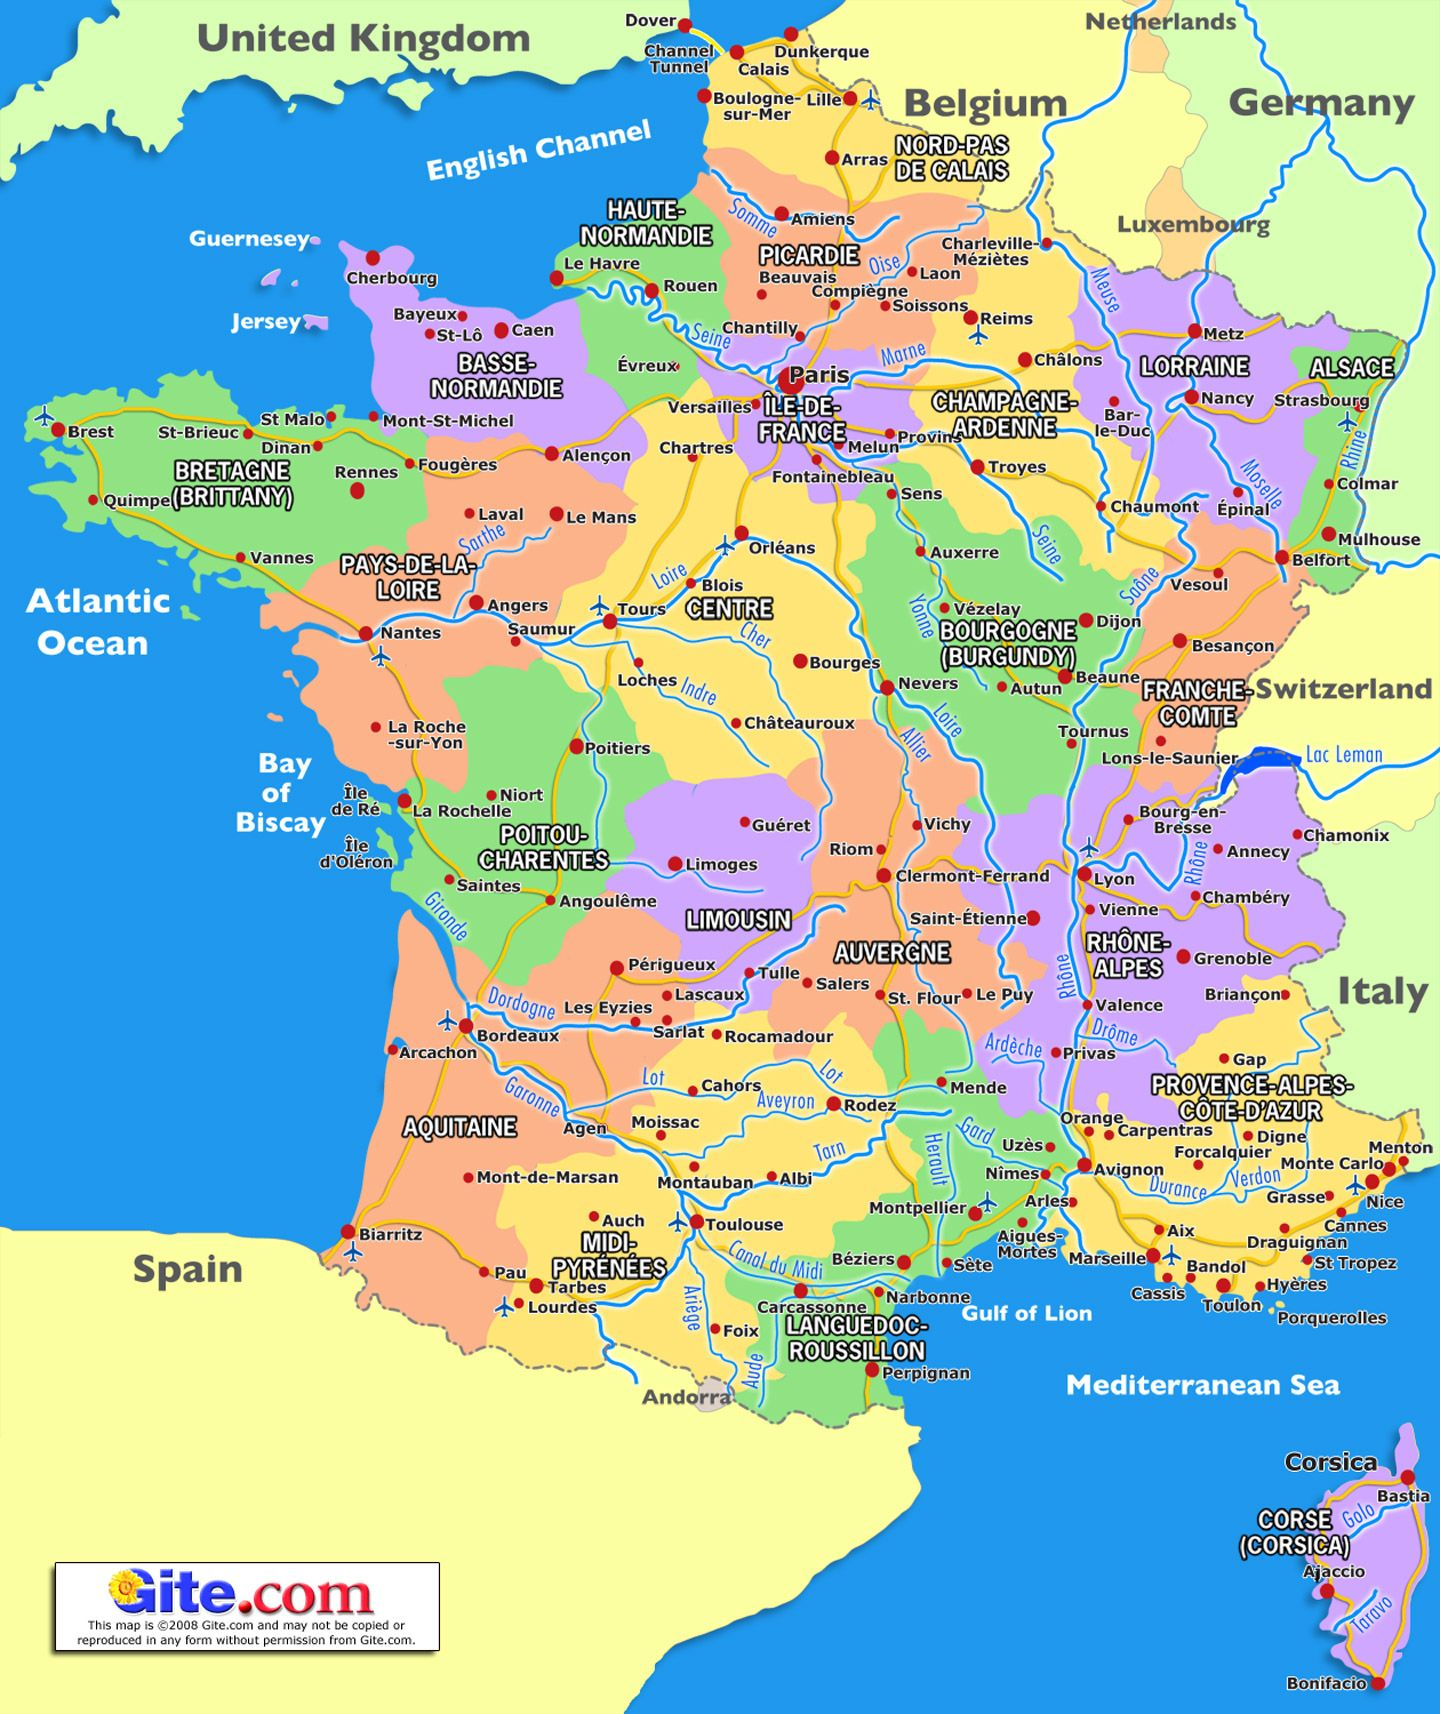 Map Of France And Corsica.Pin By Rosanna Reynoso On France In 2019 France Map France